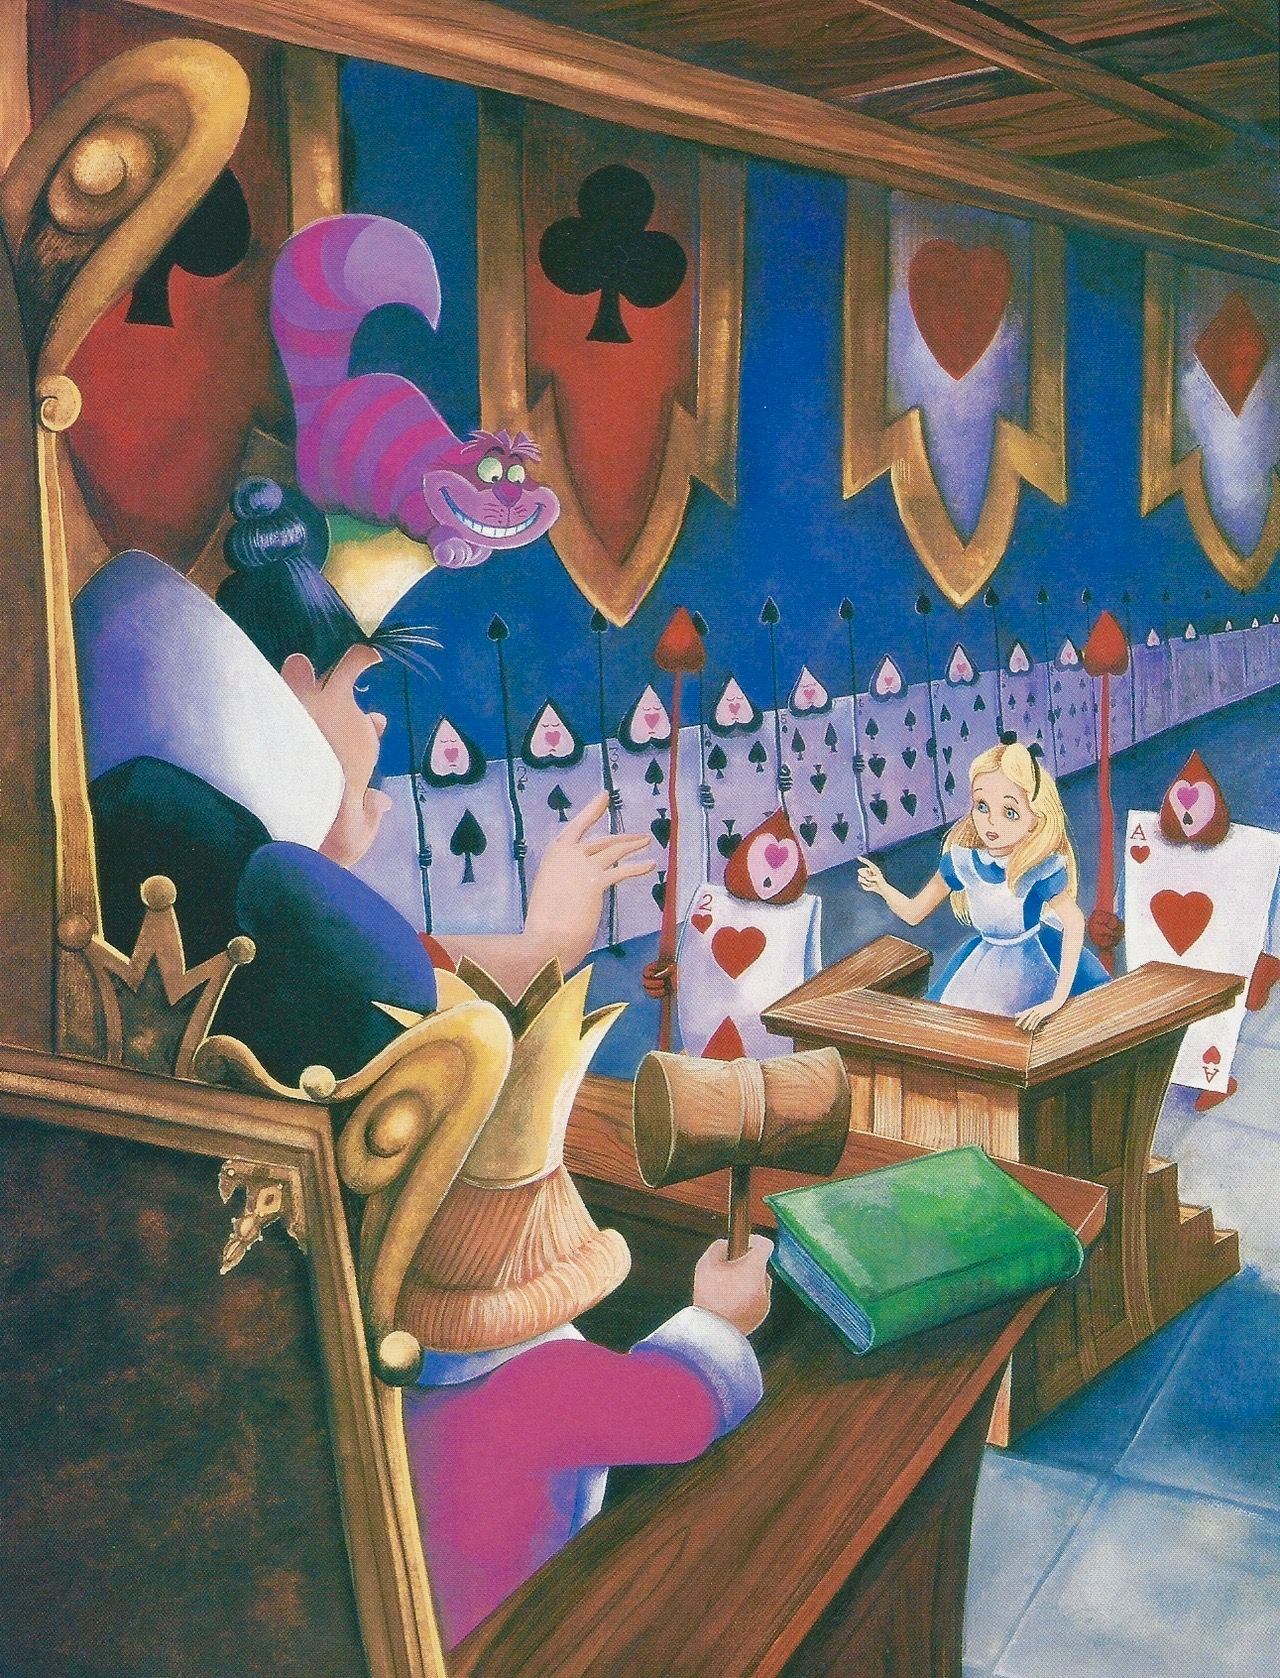 ALICE IN WONDERLAND BY FRANC MATEU AND HOLLY HANNON 2 MISS